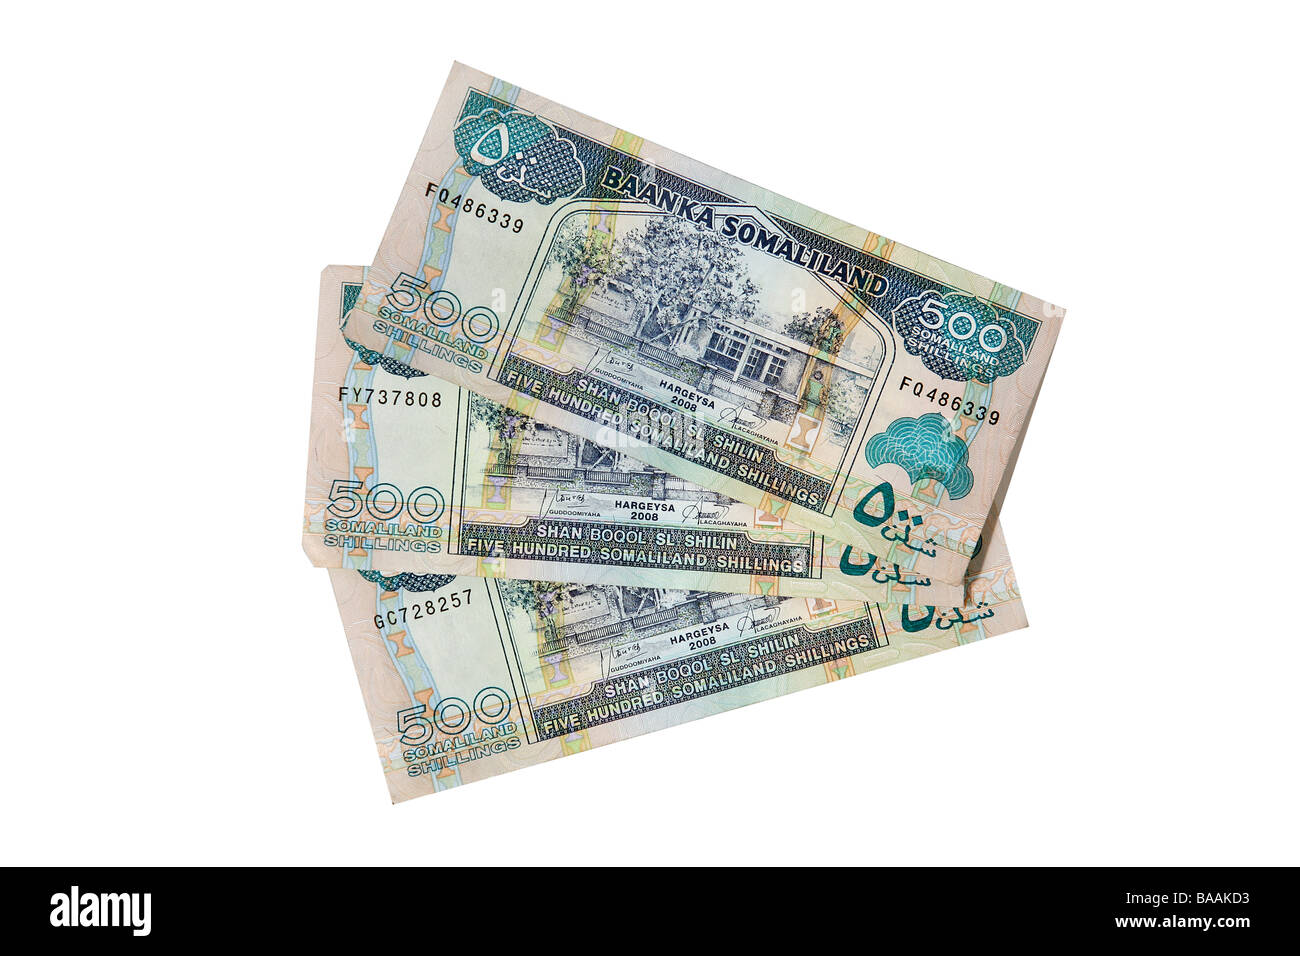 Somaliland 500 Shilling notes cut out on a white background - Stock Image